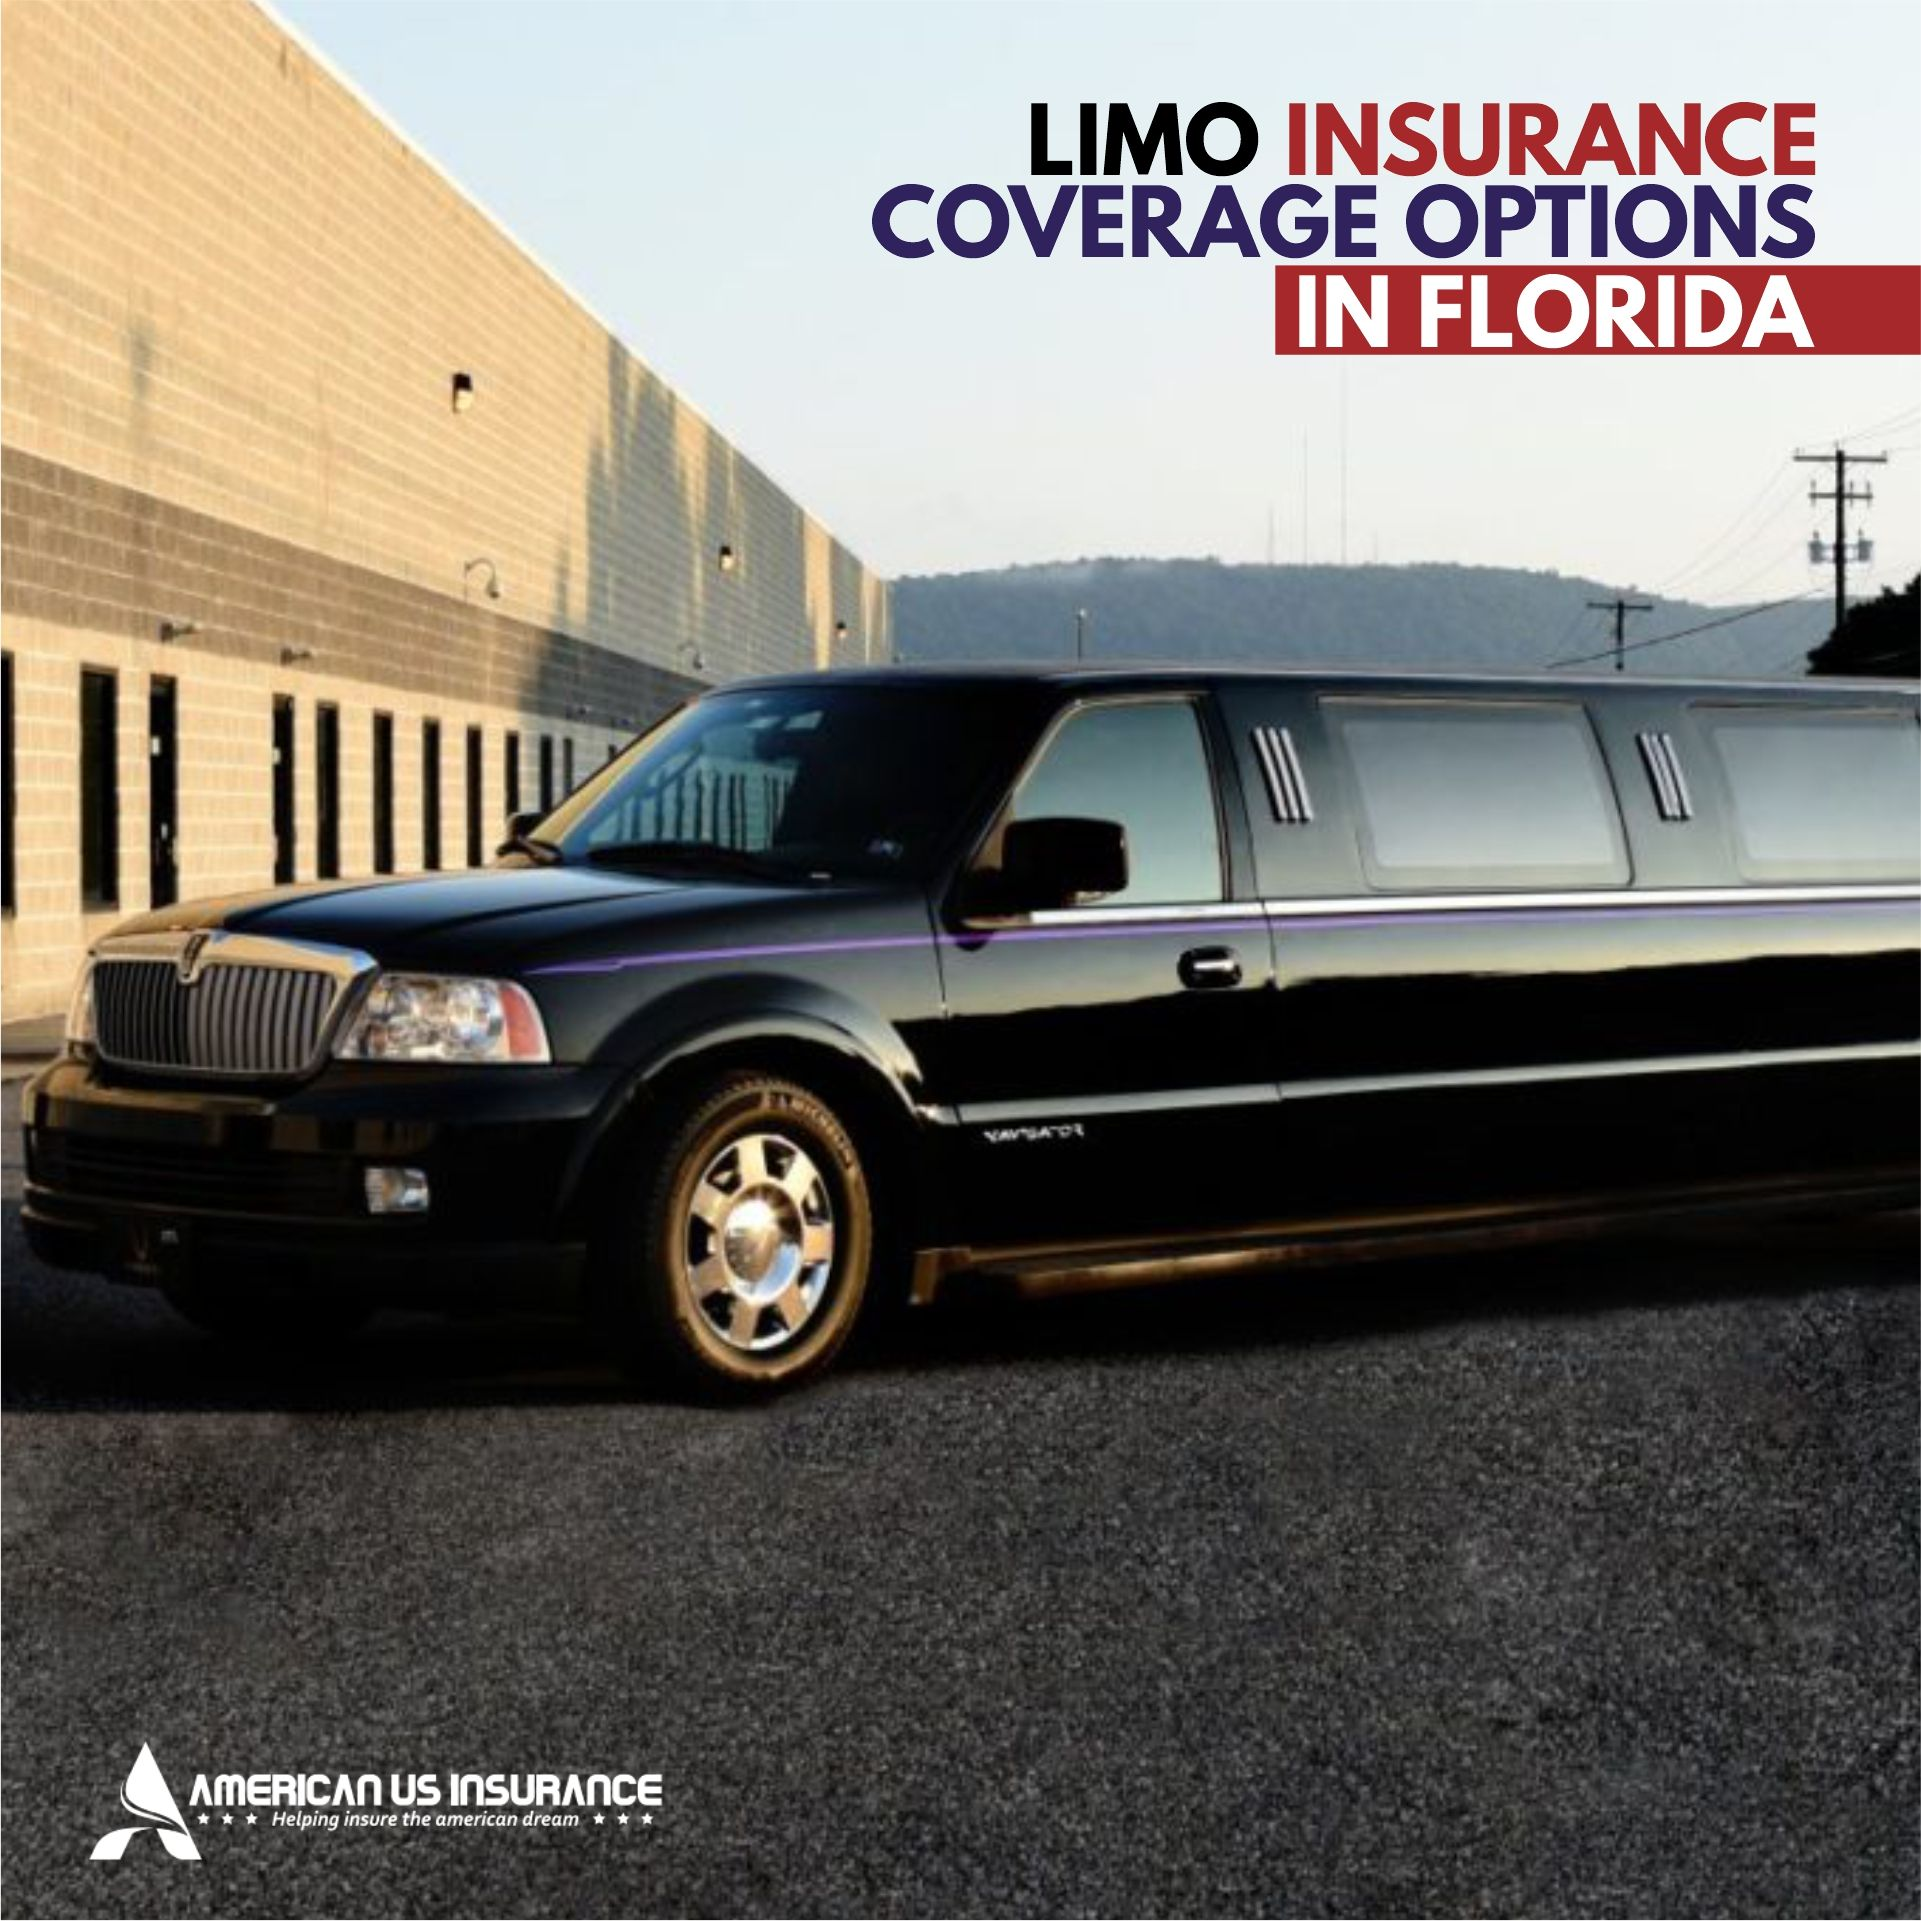 Commercial Auto Insurance covers damage or theft to the